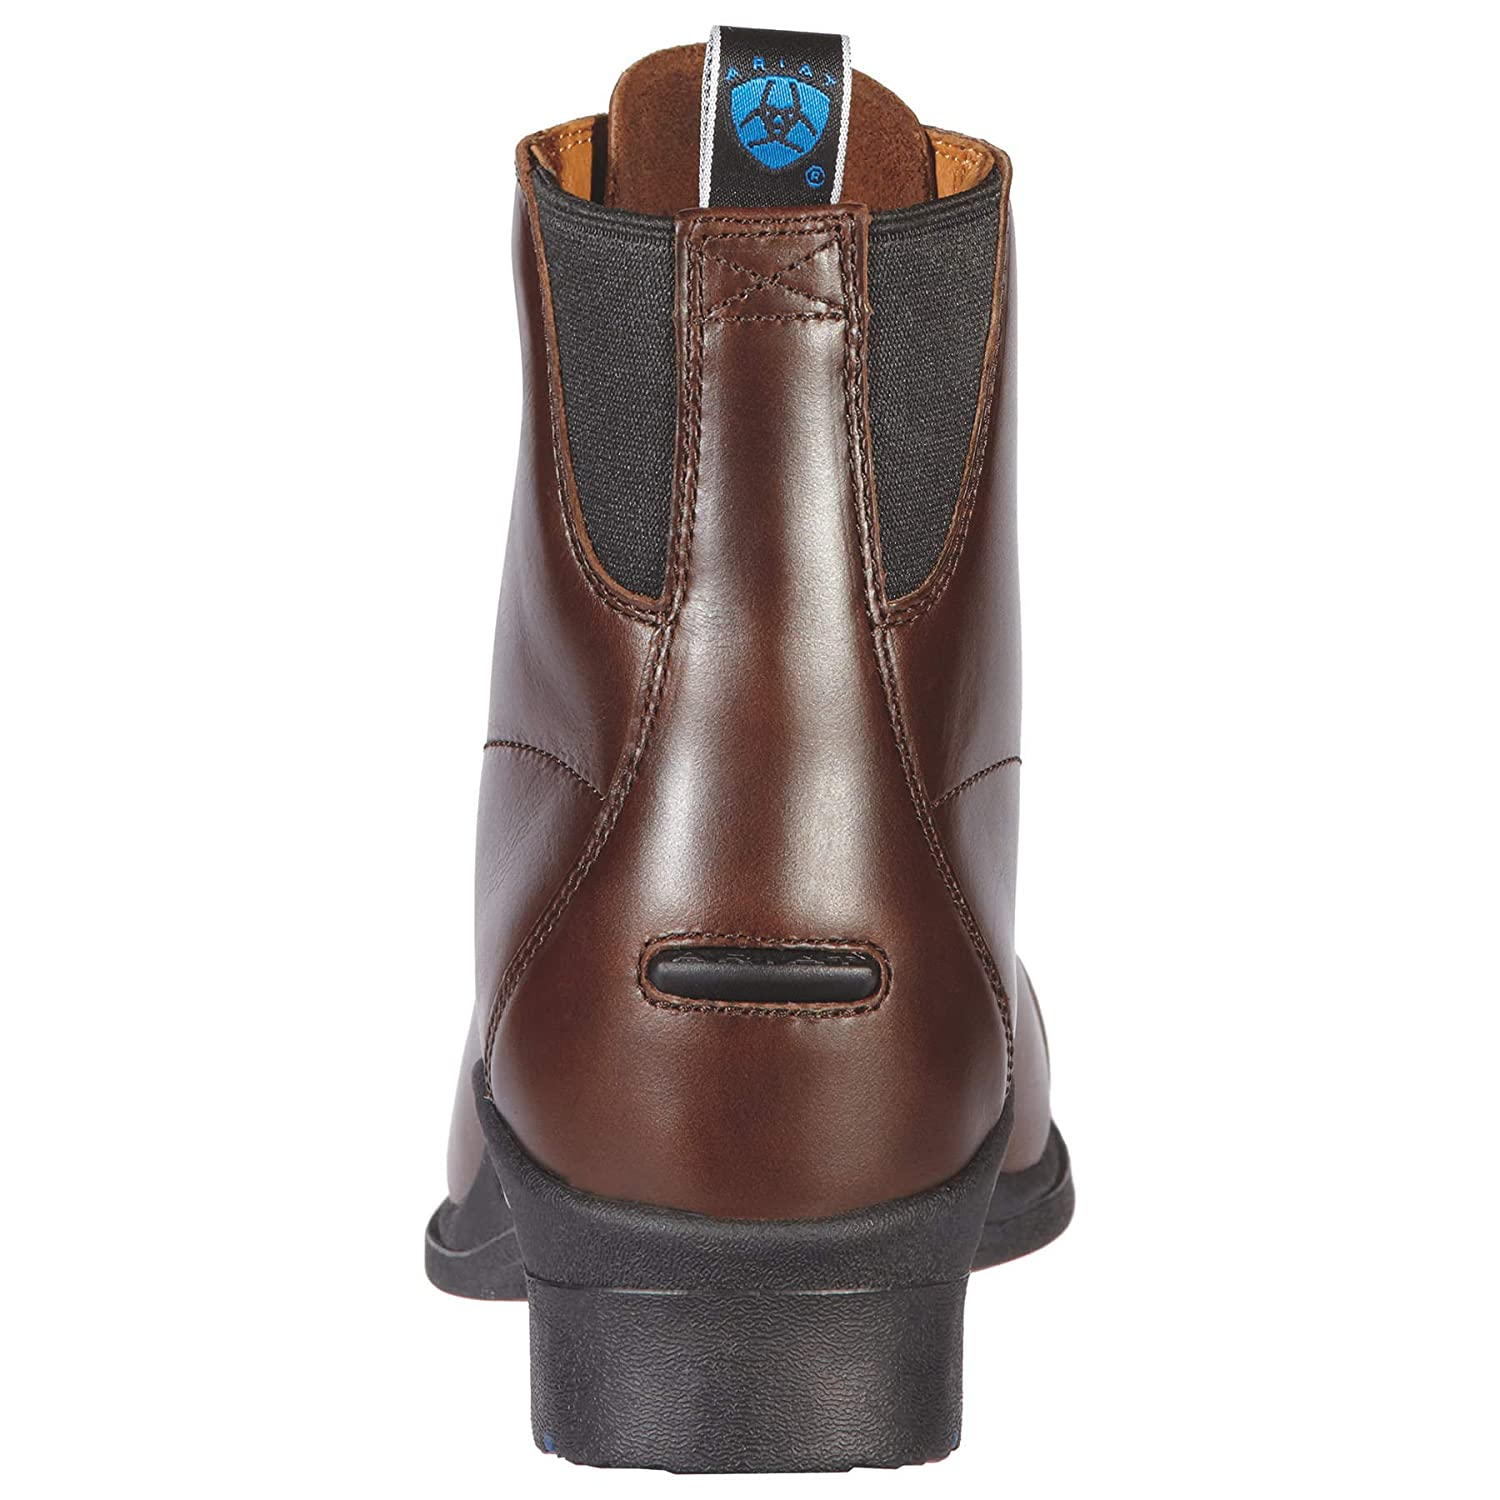 734c2ae8e7a ARIAT Performer Pro VX Paddock Boot